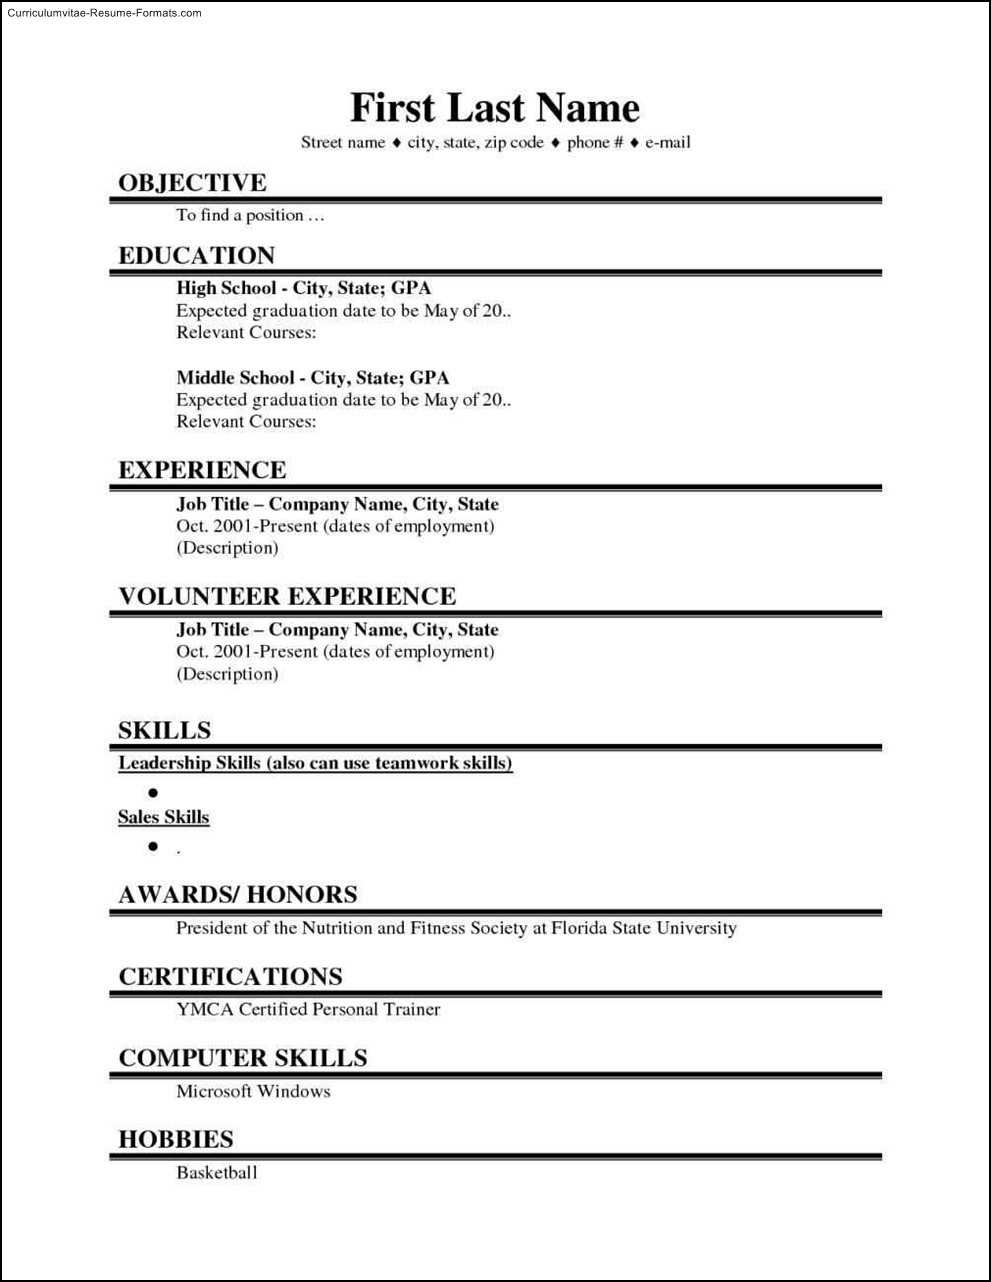 001 College Student Resume Template Microsoft Word Free Intended For College Student Resume Templates Microsoft Word